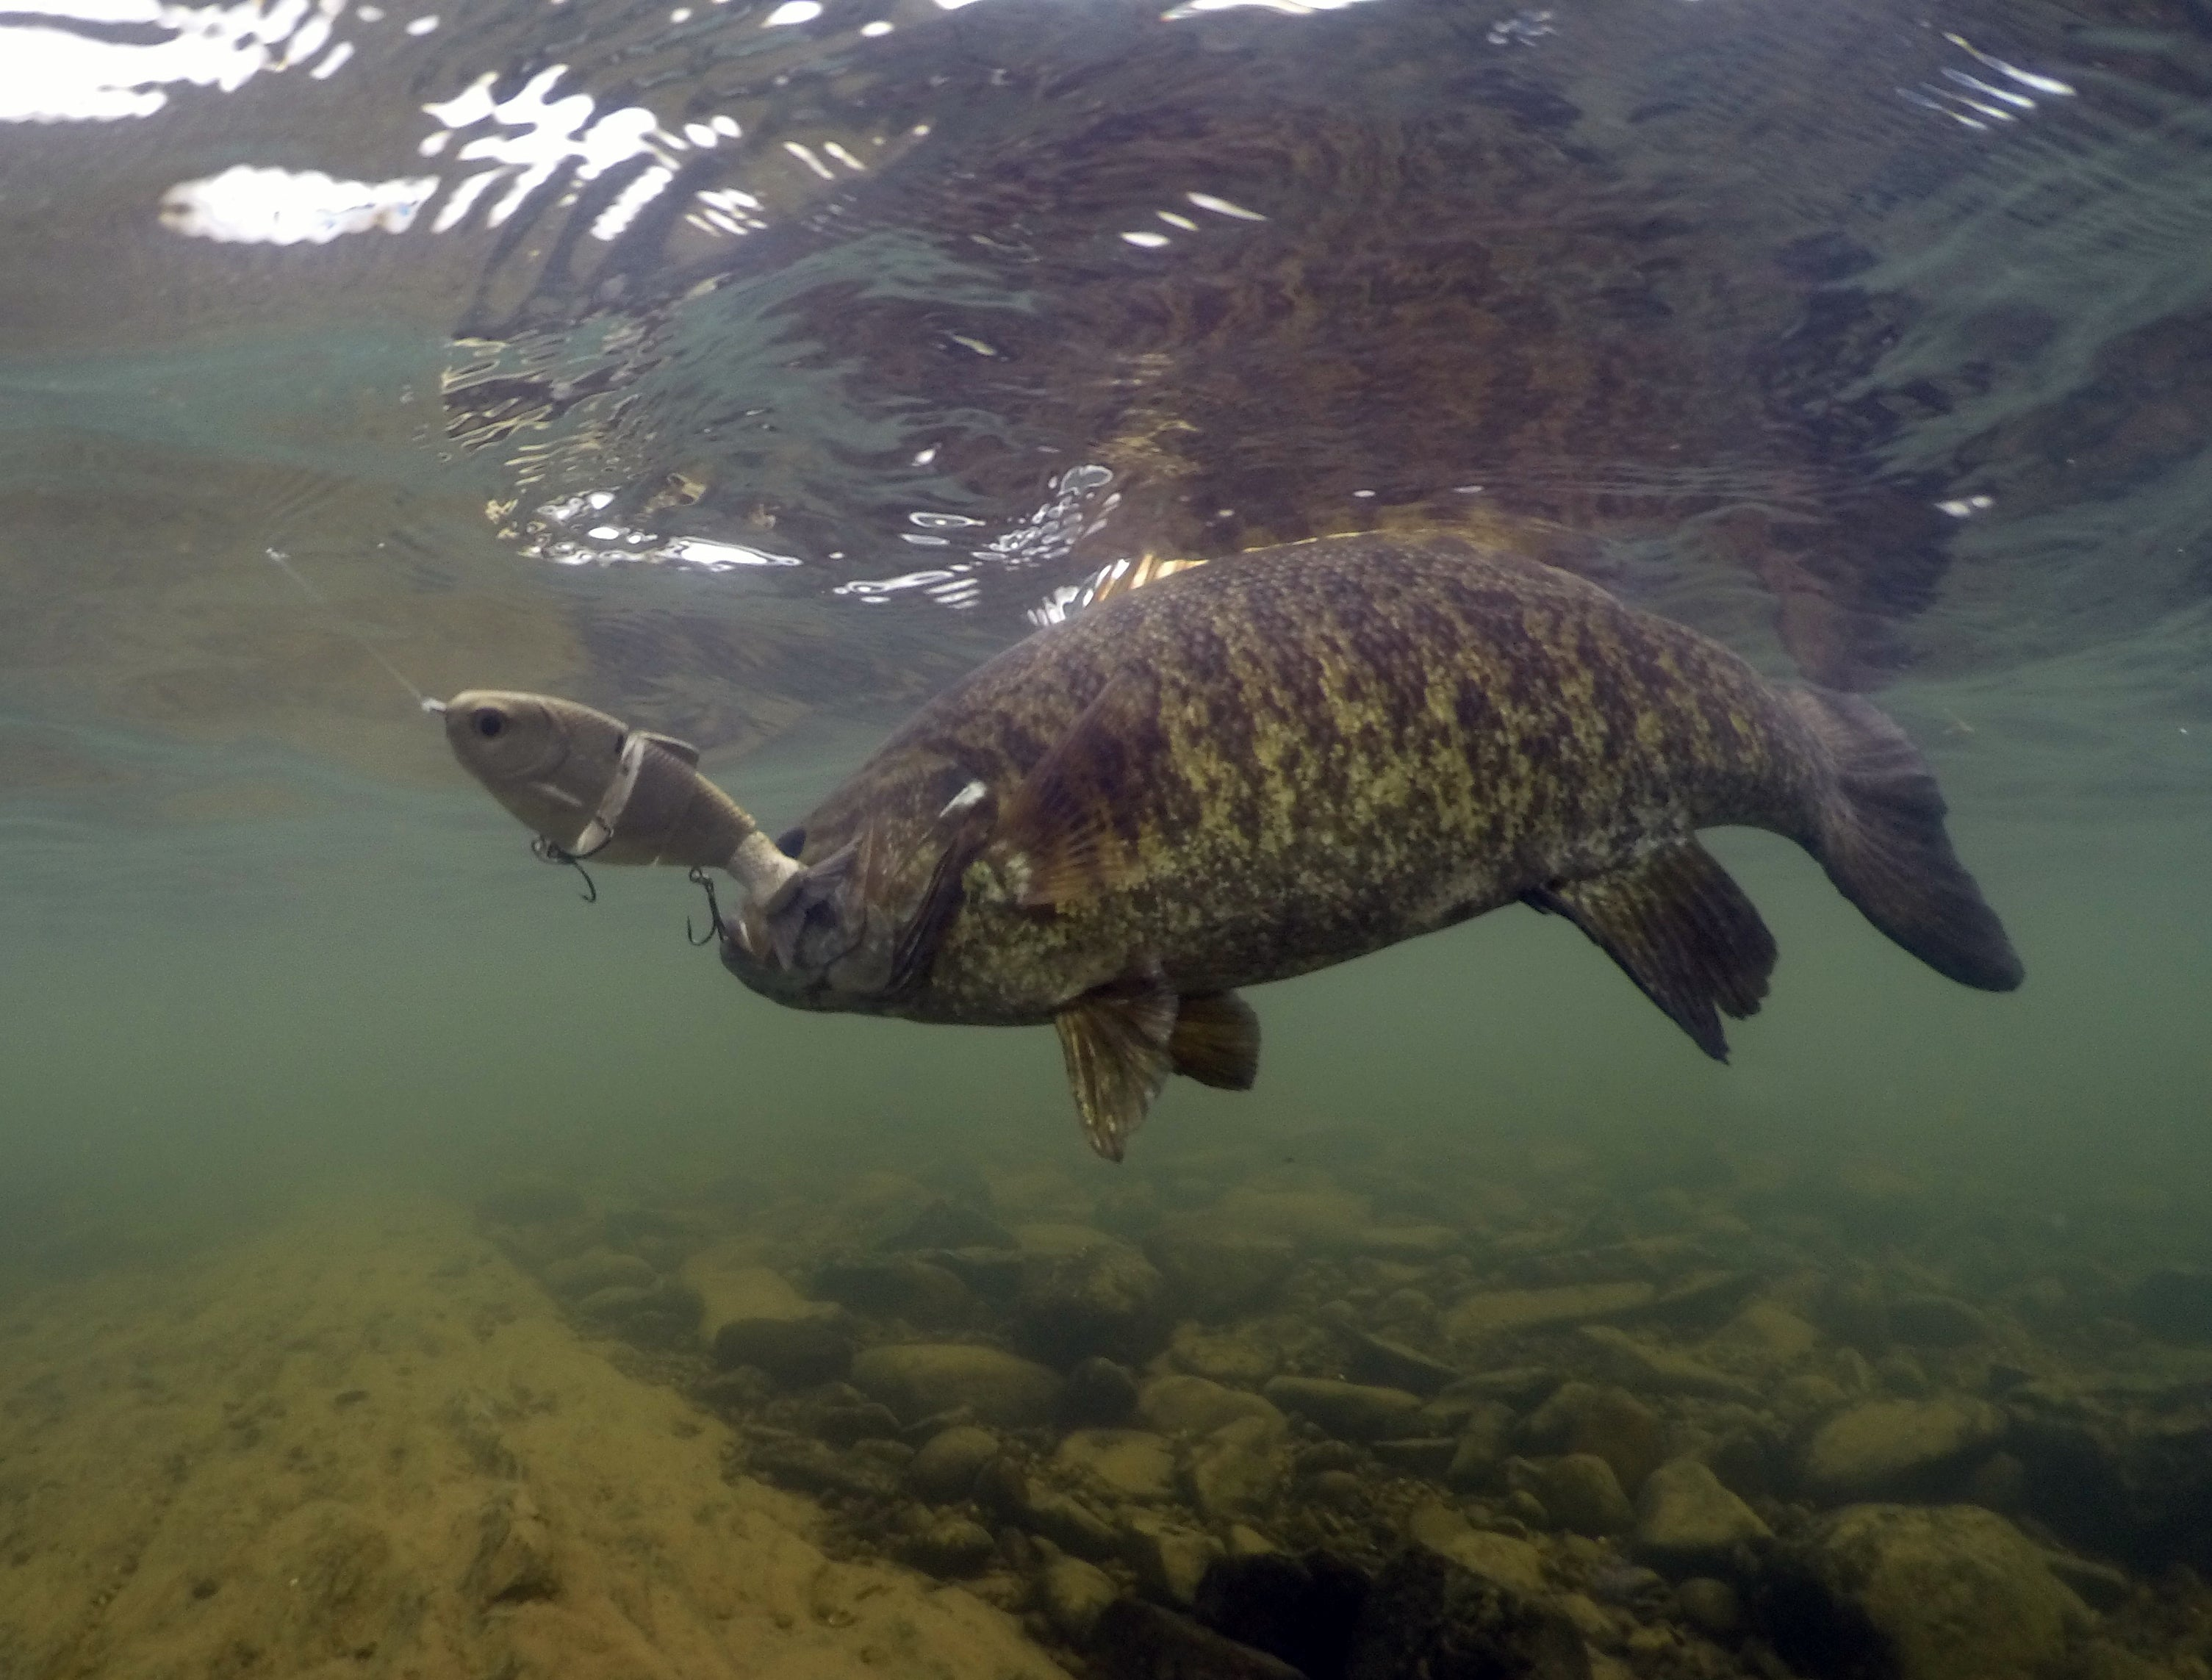 Bull Shad Underwater Smallmouth